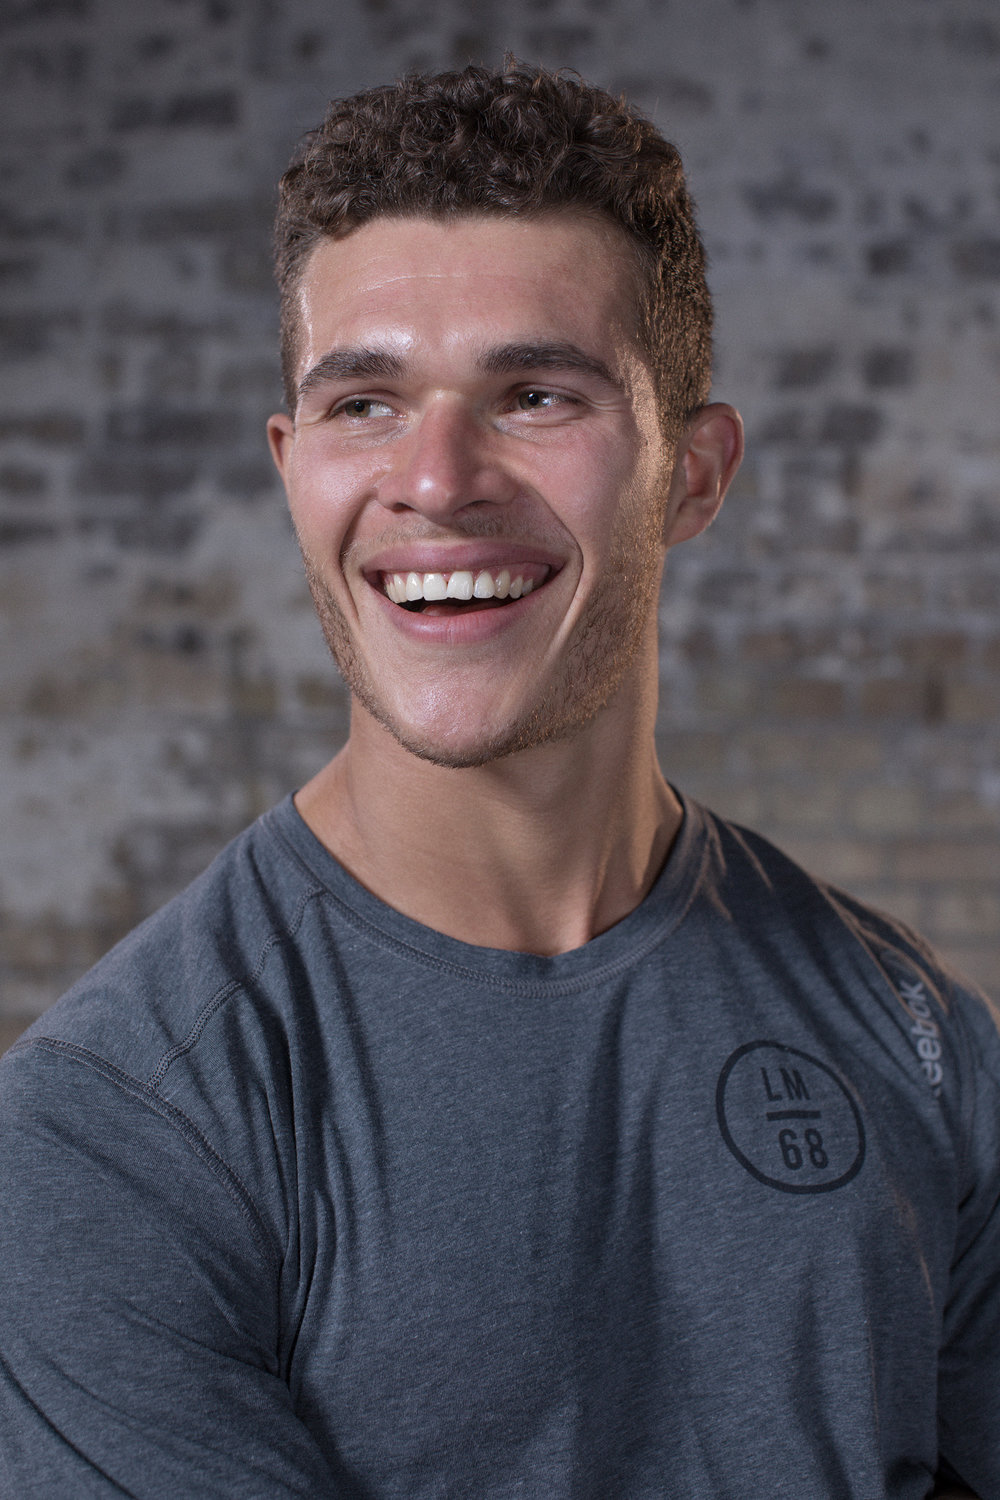 Sports & Fitness Photographer Gum Box Instructor Photoshoot Tooth